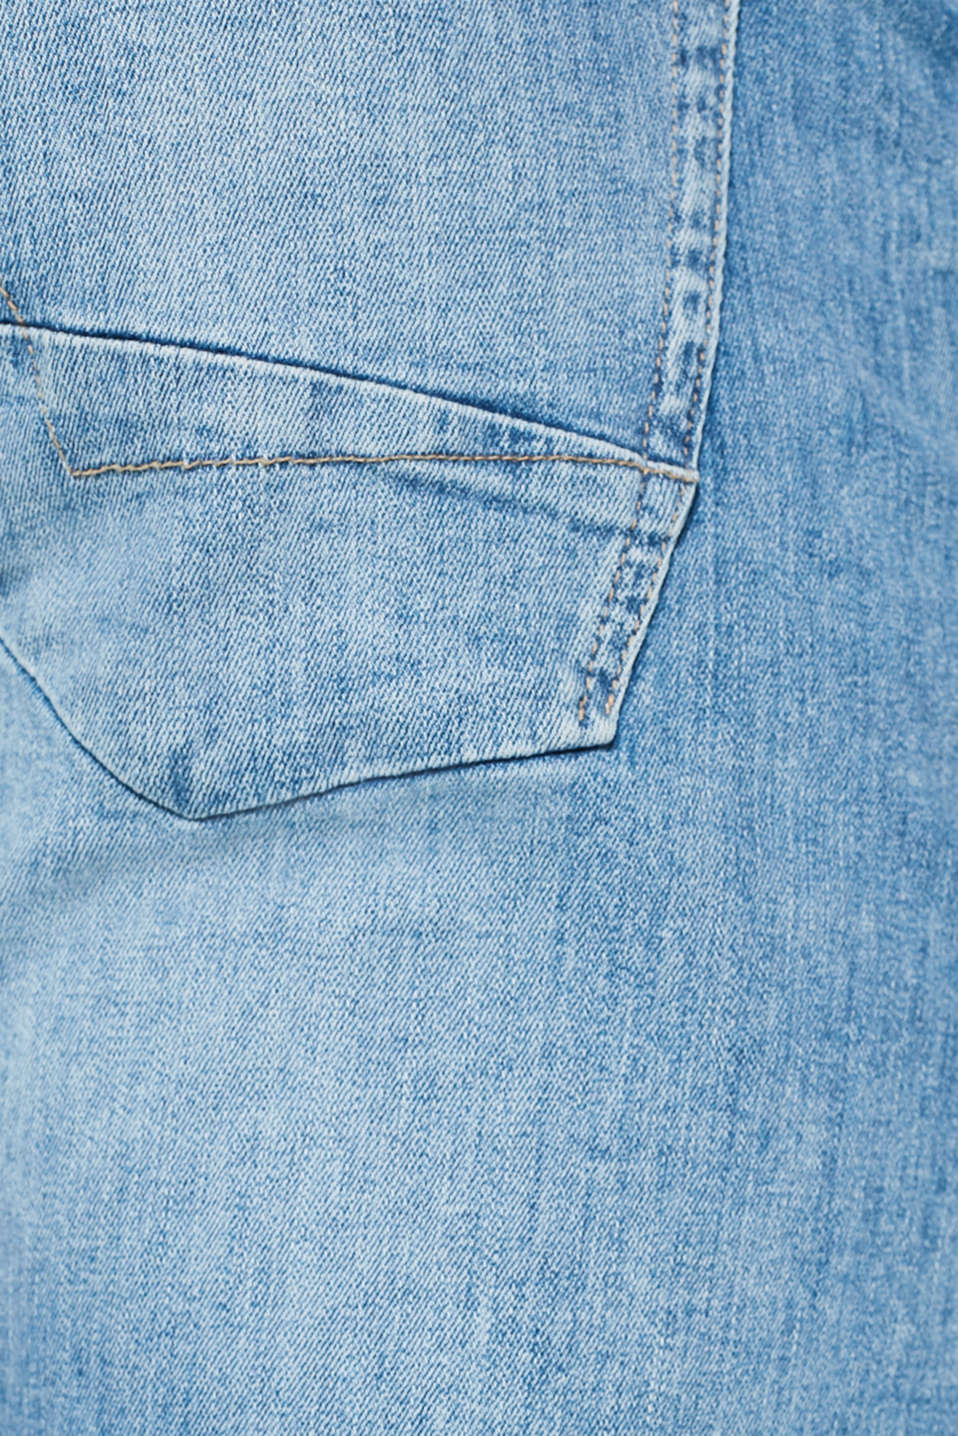 Stretch jeans containing organic cotton, BLUE LIGHT WASH, detail image number 4